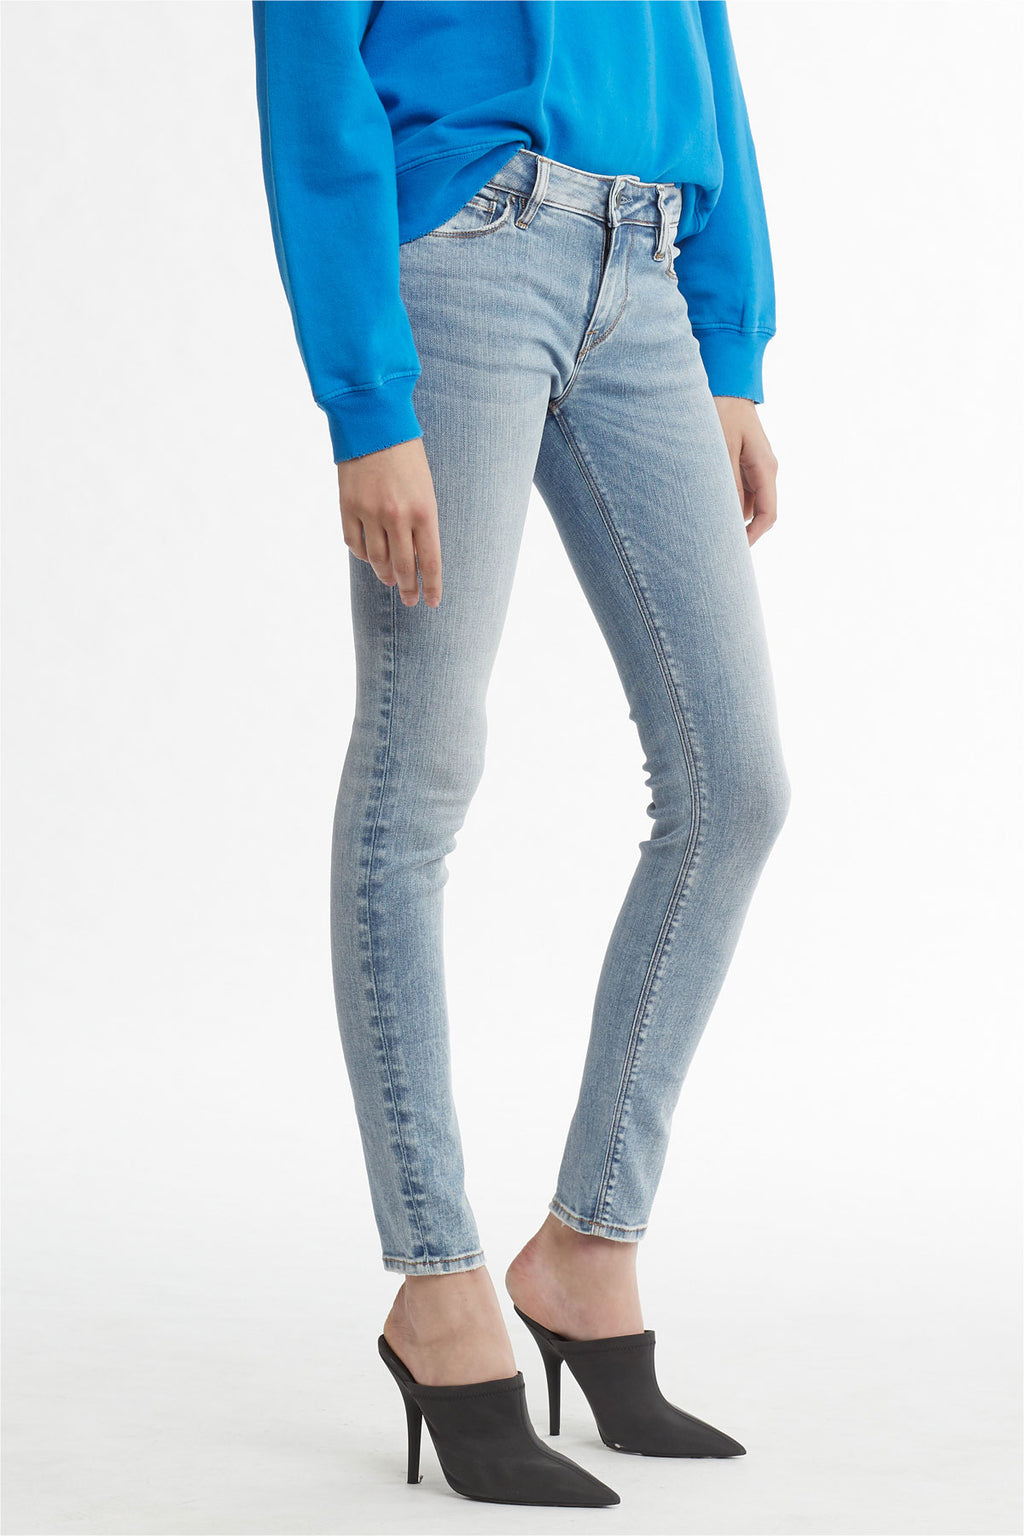 KRISTA SUPER SKINNY JEAN - BREAKTHROUGH - Image 2